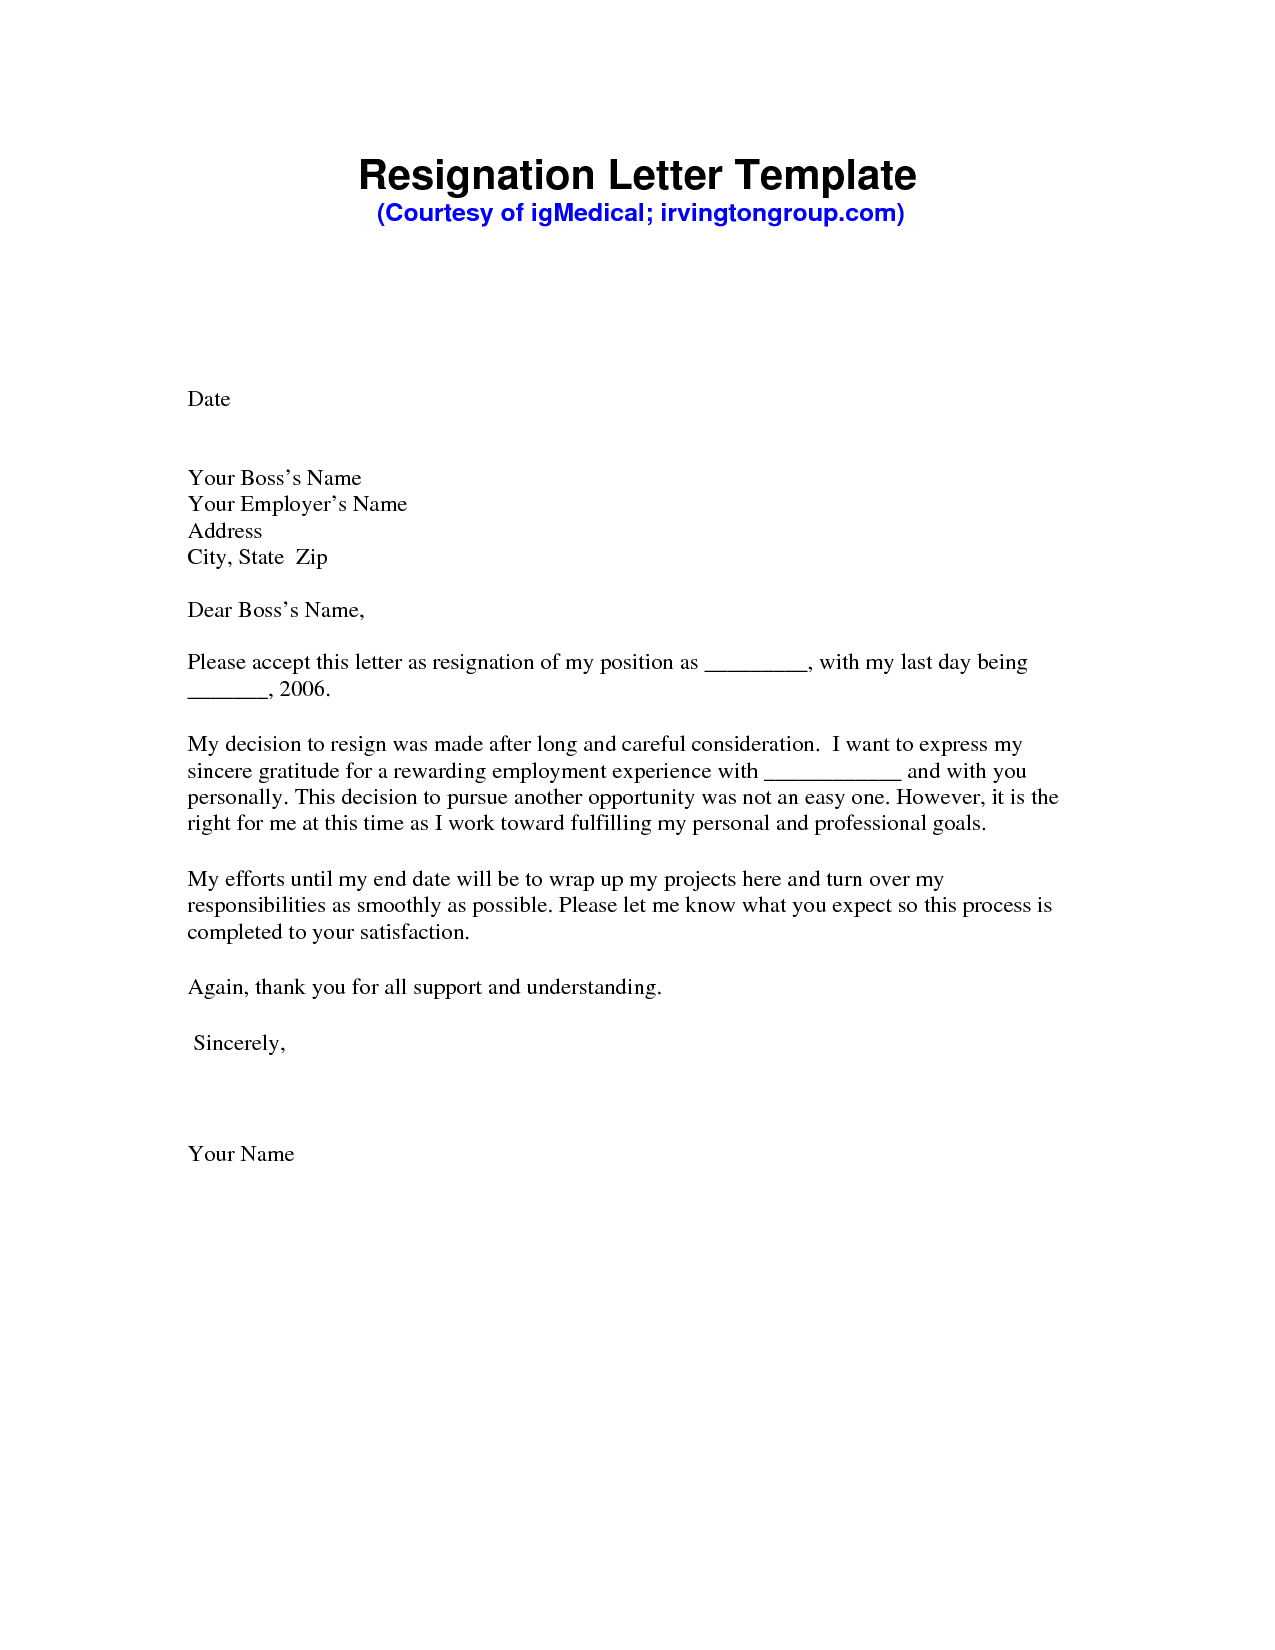 Microsoft Word Resignation Letter Template - Resignation Letter Sample Pdf Resignation Letter